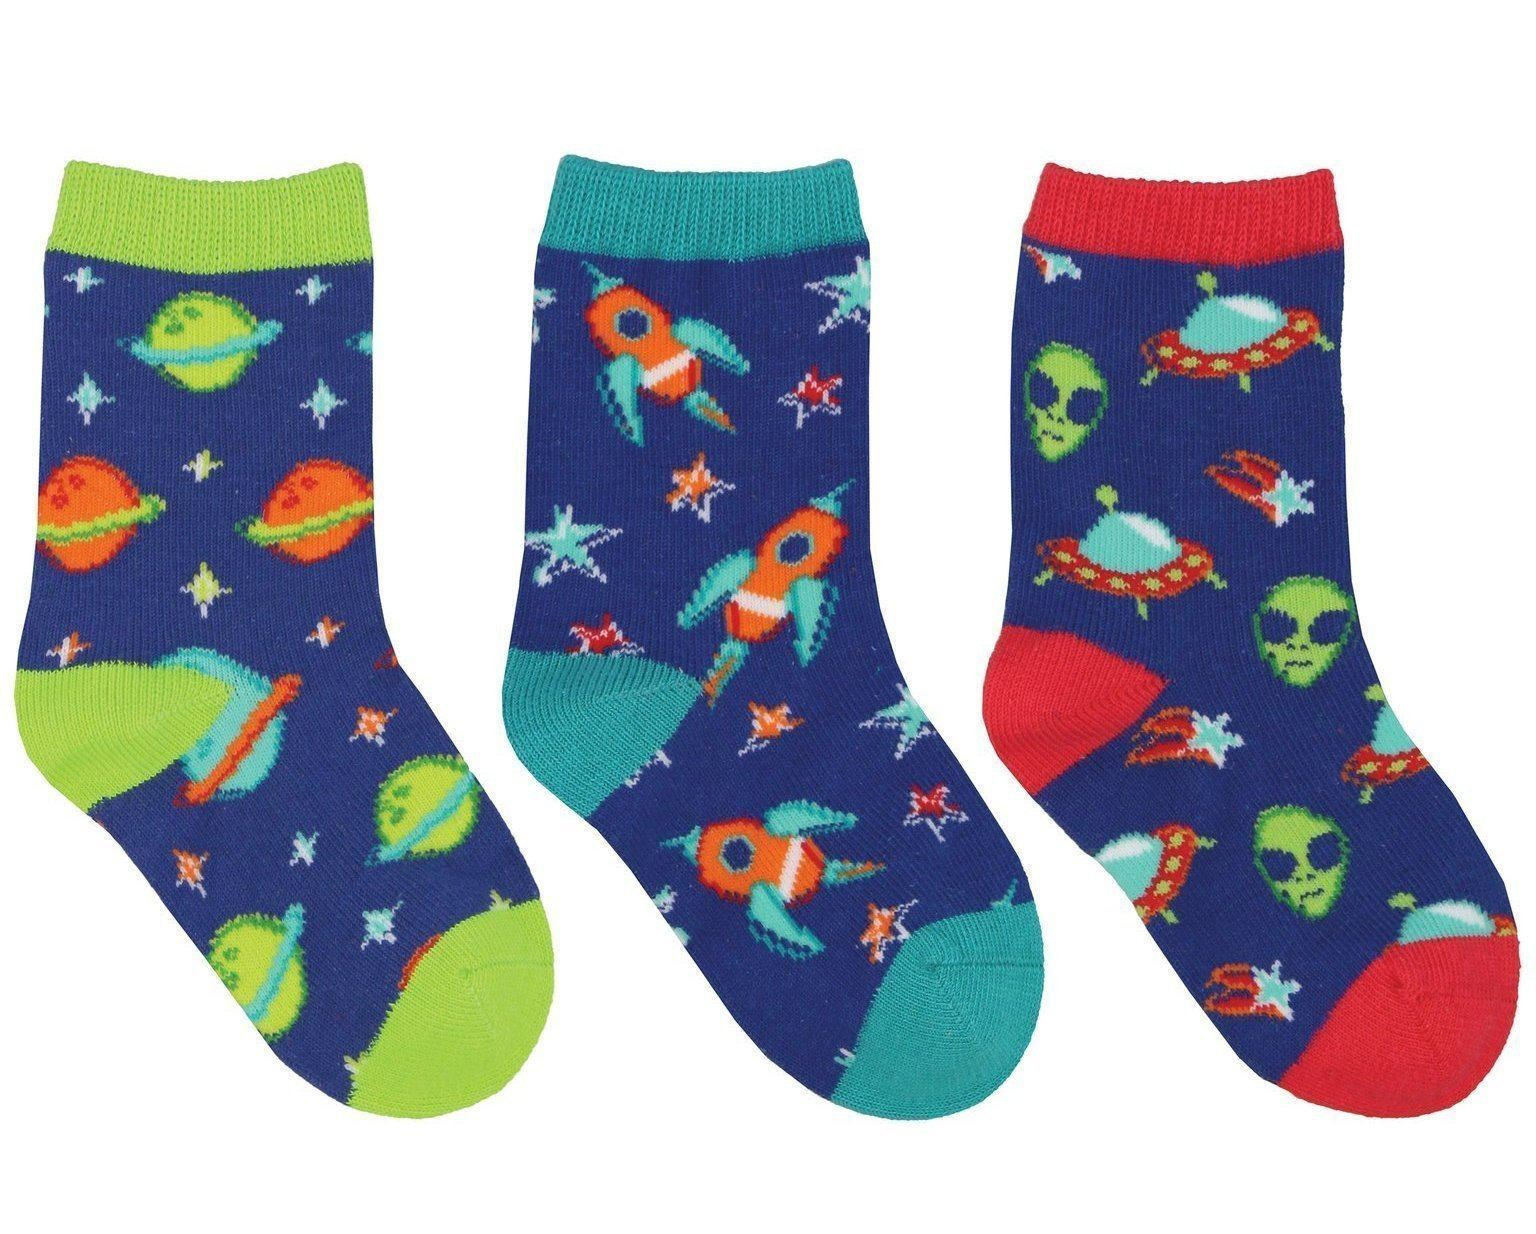 Socksmith - To the Moon 3-pack Crew Socks | Kids' - Knock Your Socks Off